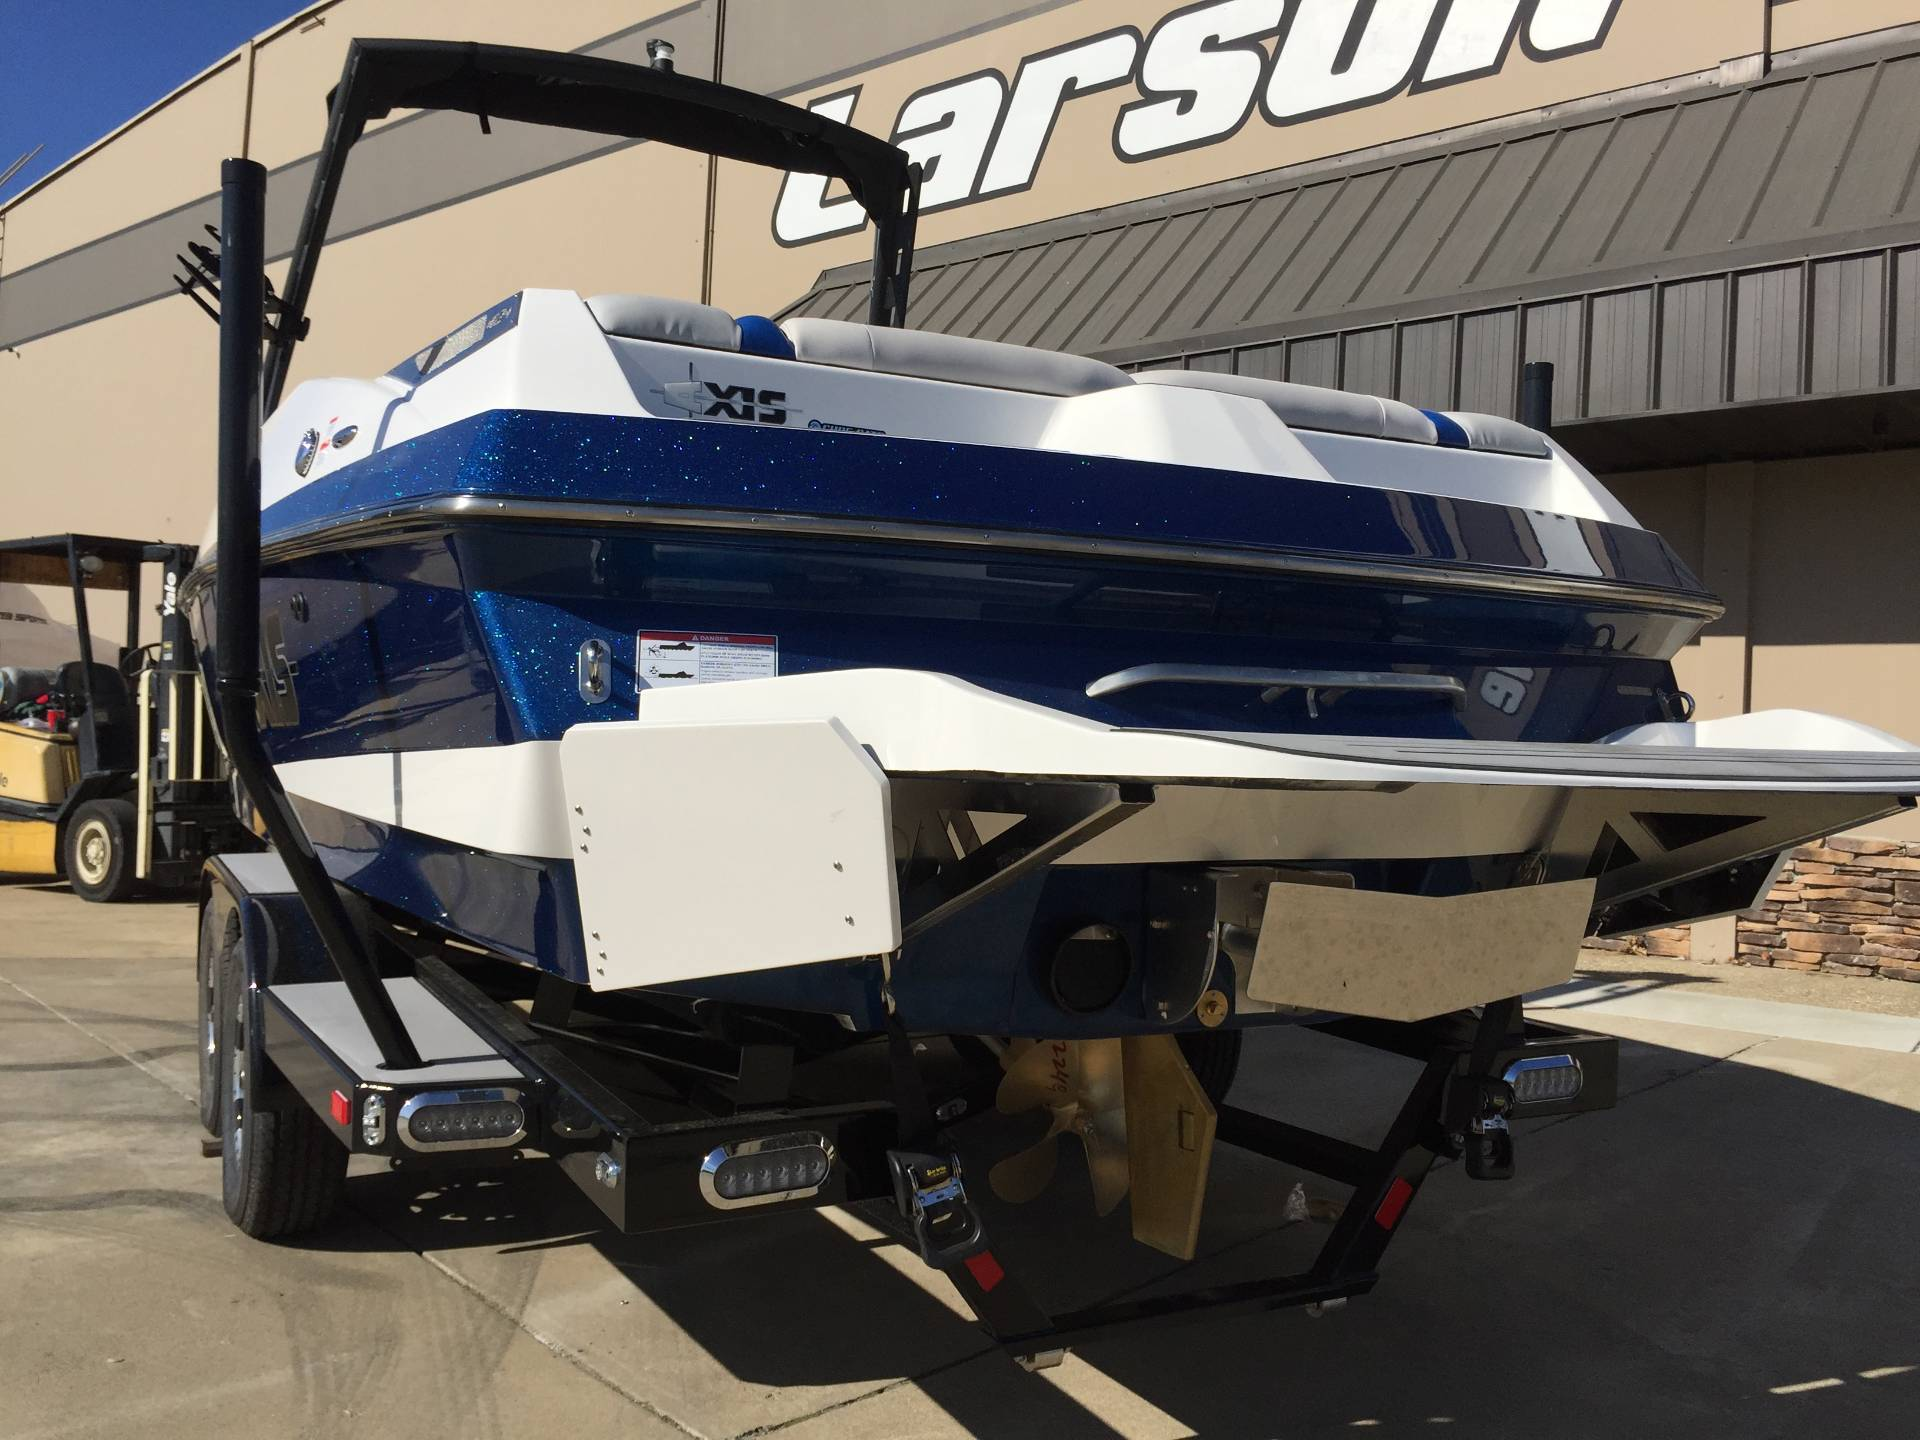 2017 Axis A 24 in Rancho Cordova, California